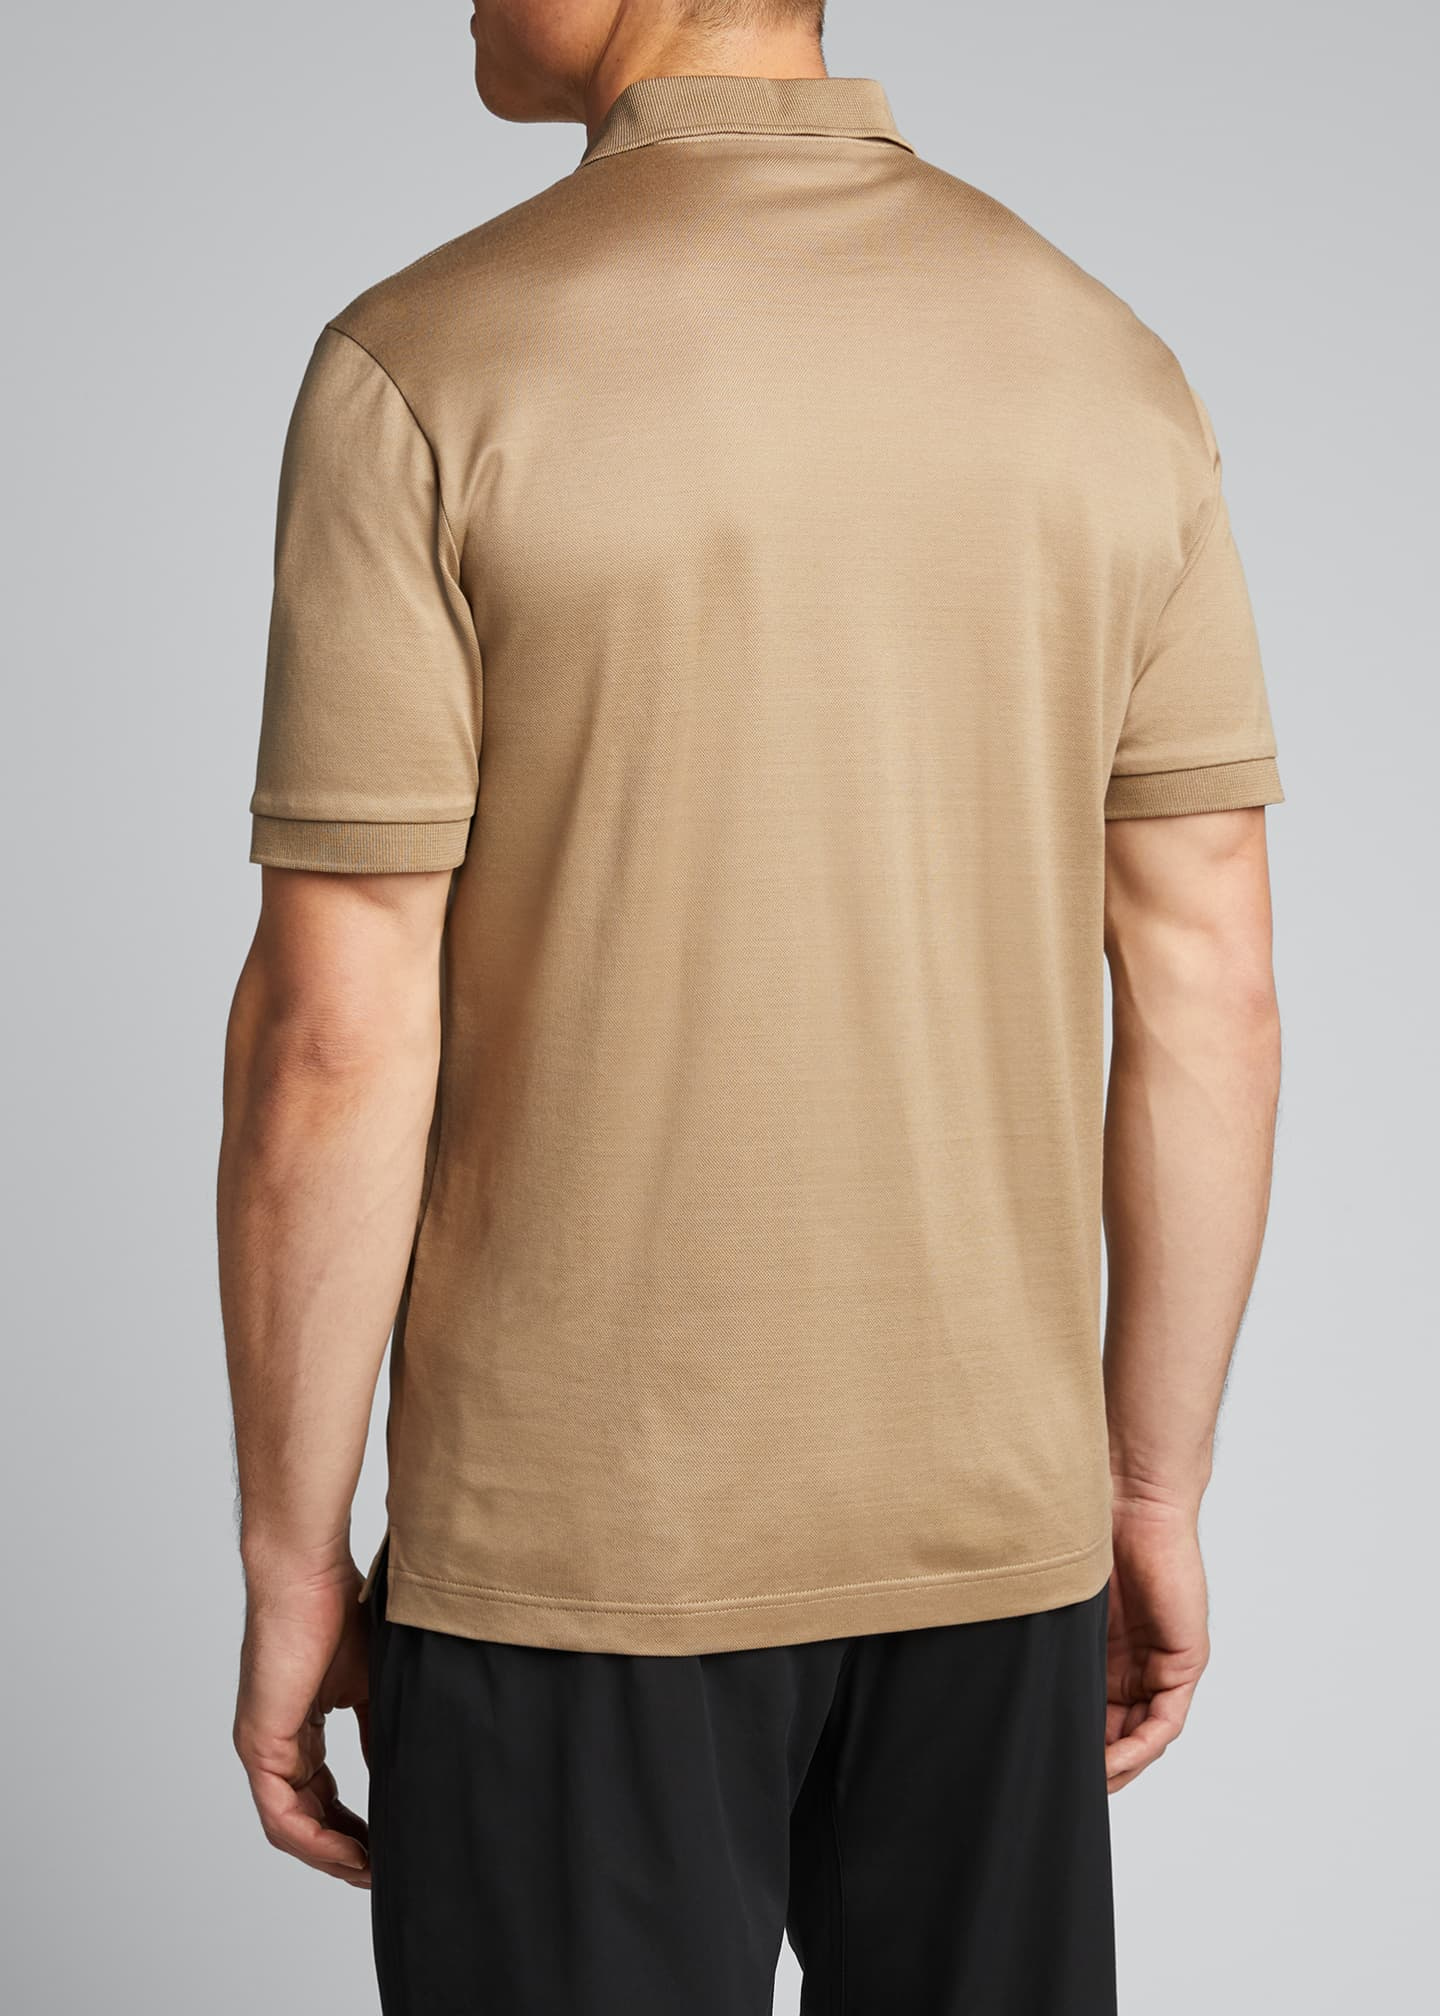 Image 2 of 5: Men's Solid Pique Polo Shirt